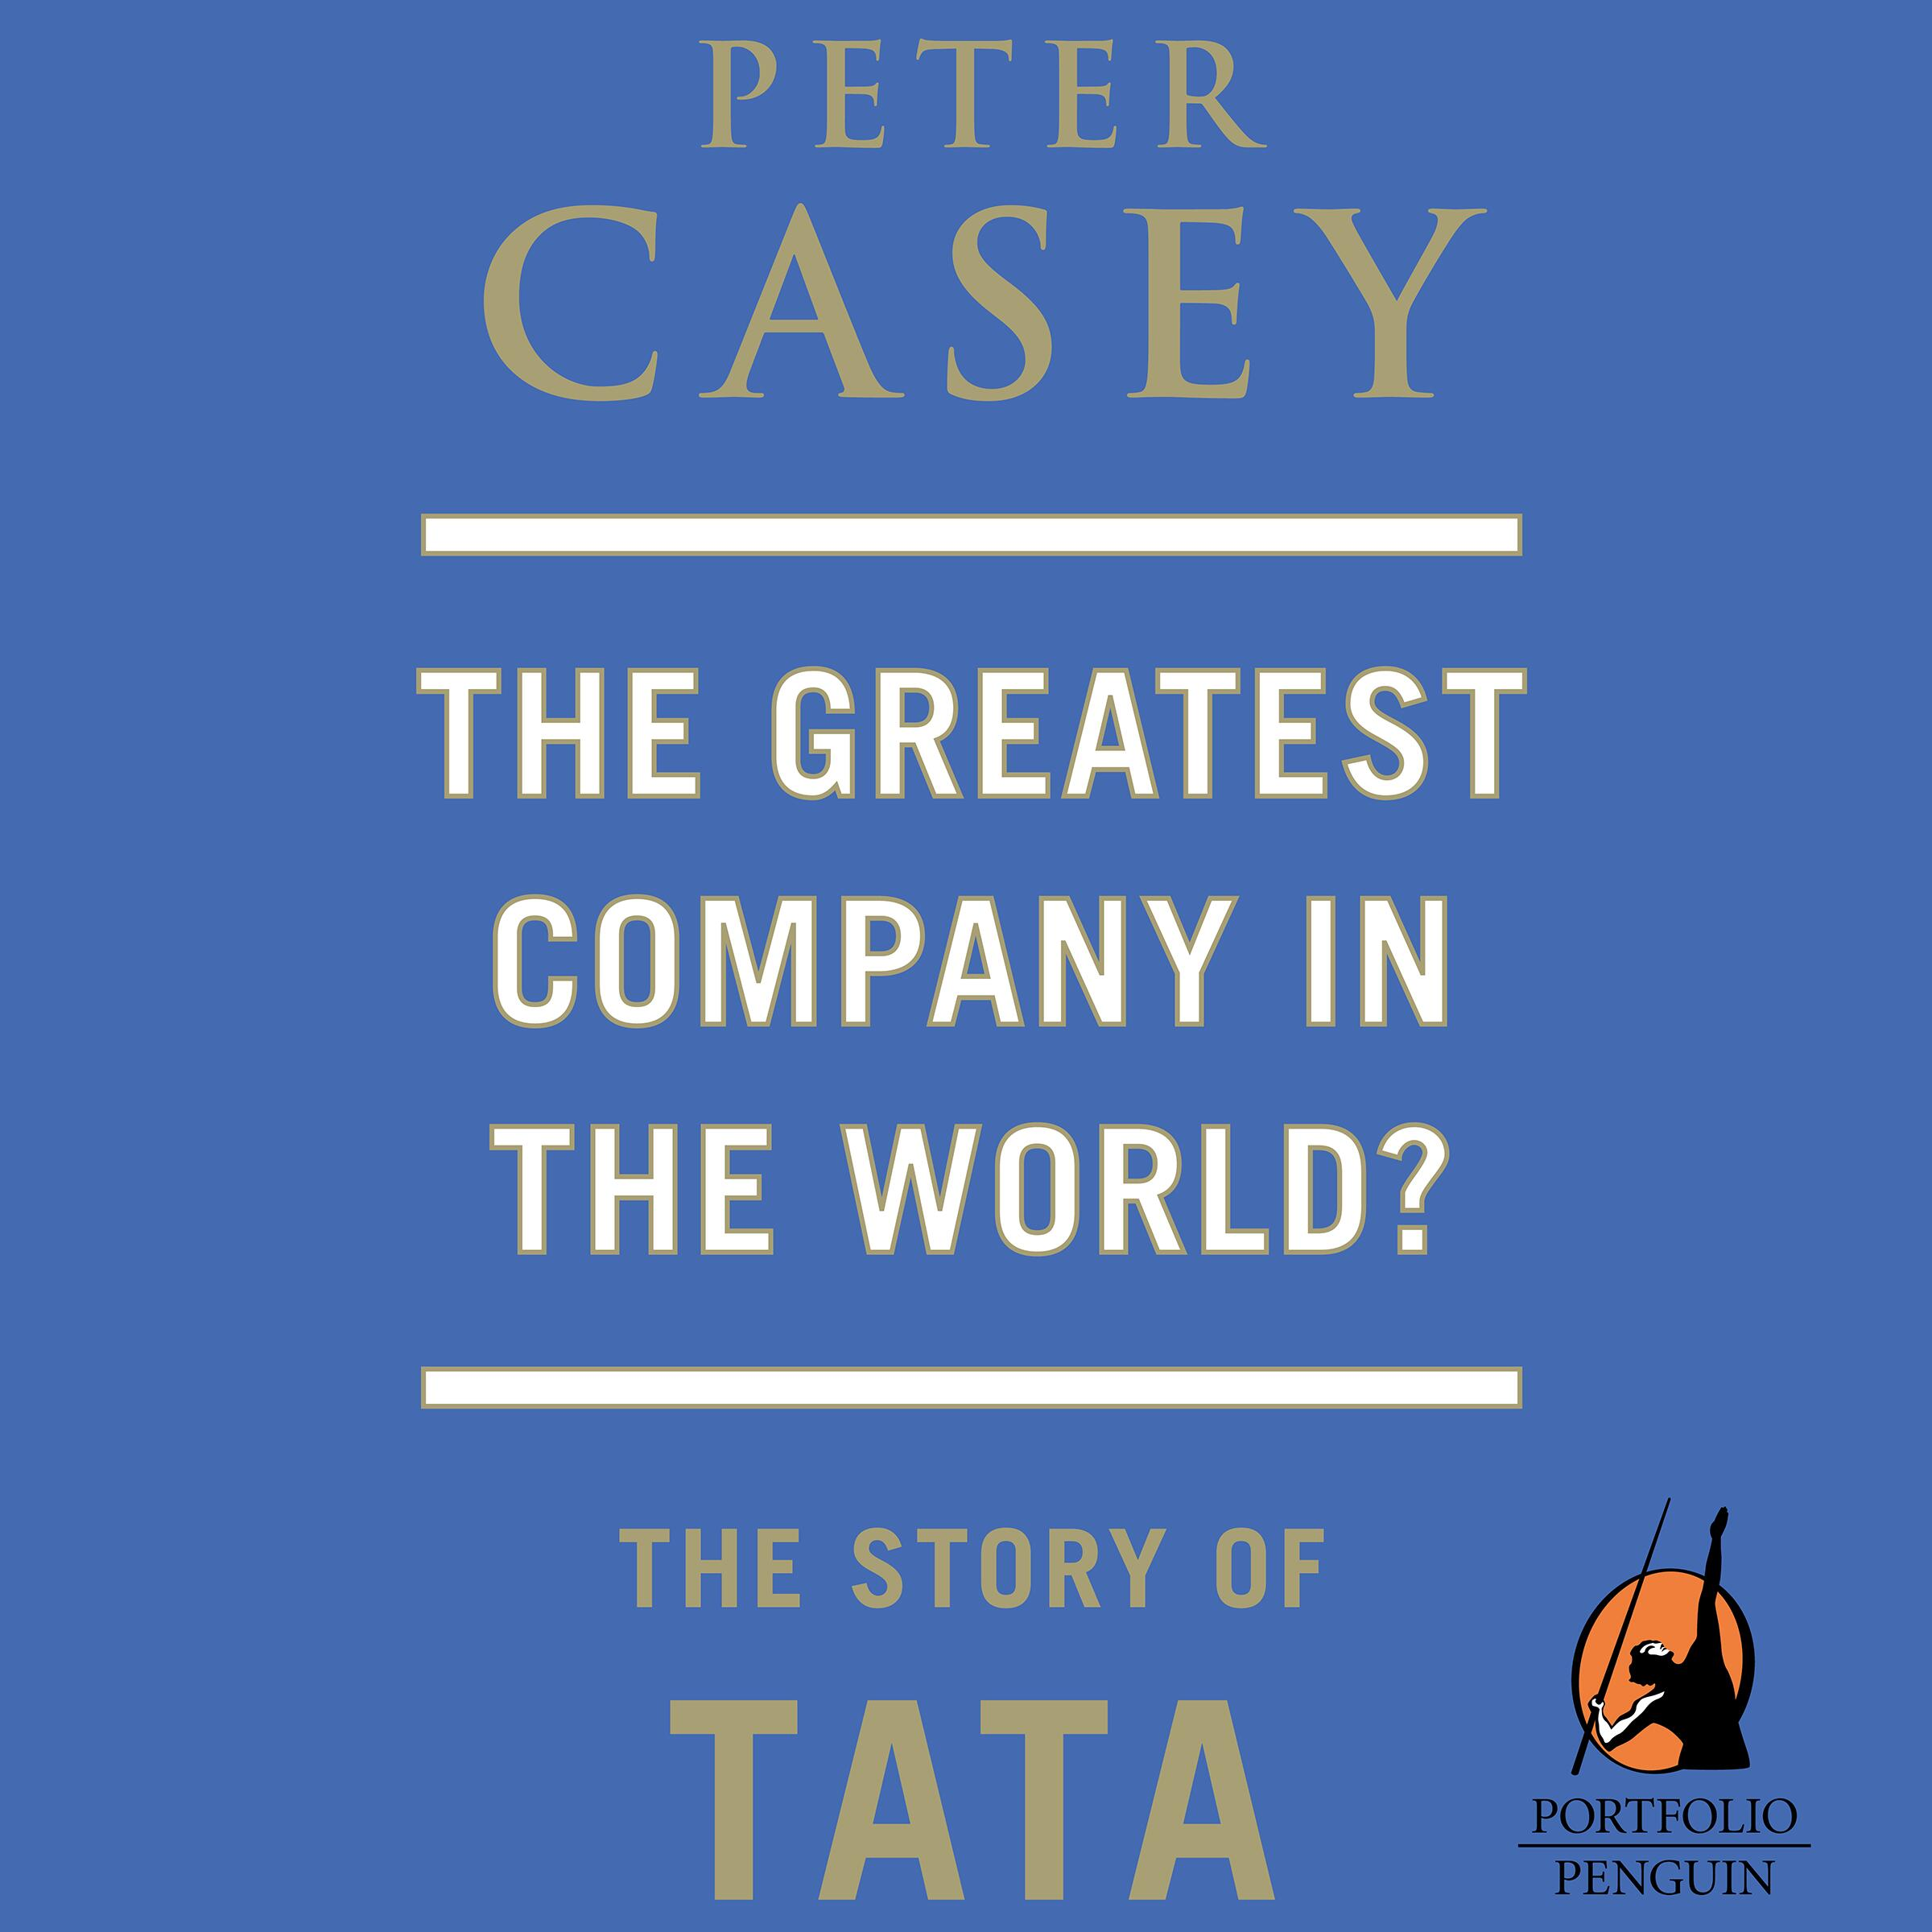 Greatest Company in the World? The Story of Tata, The